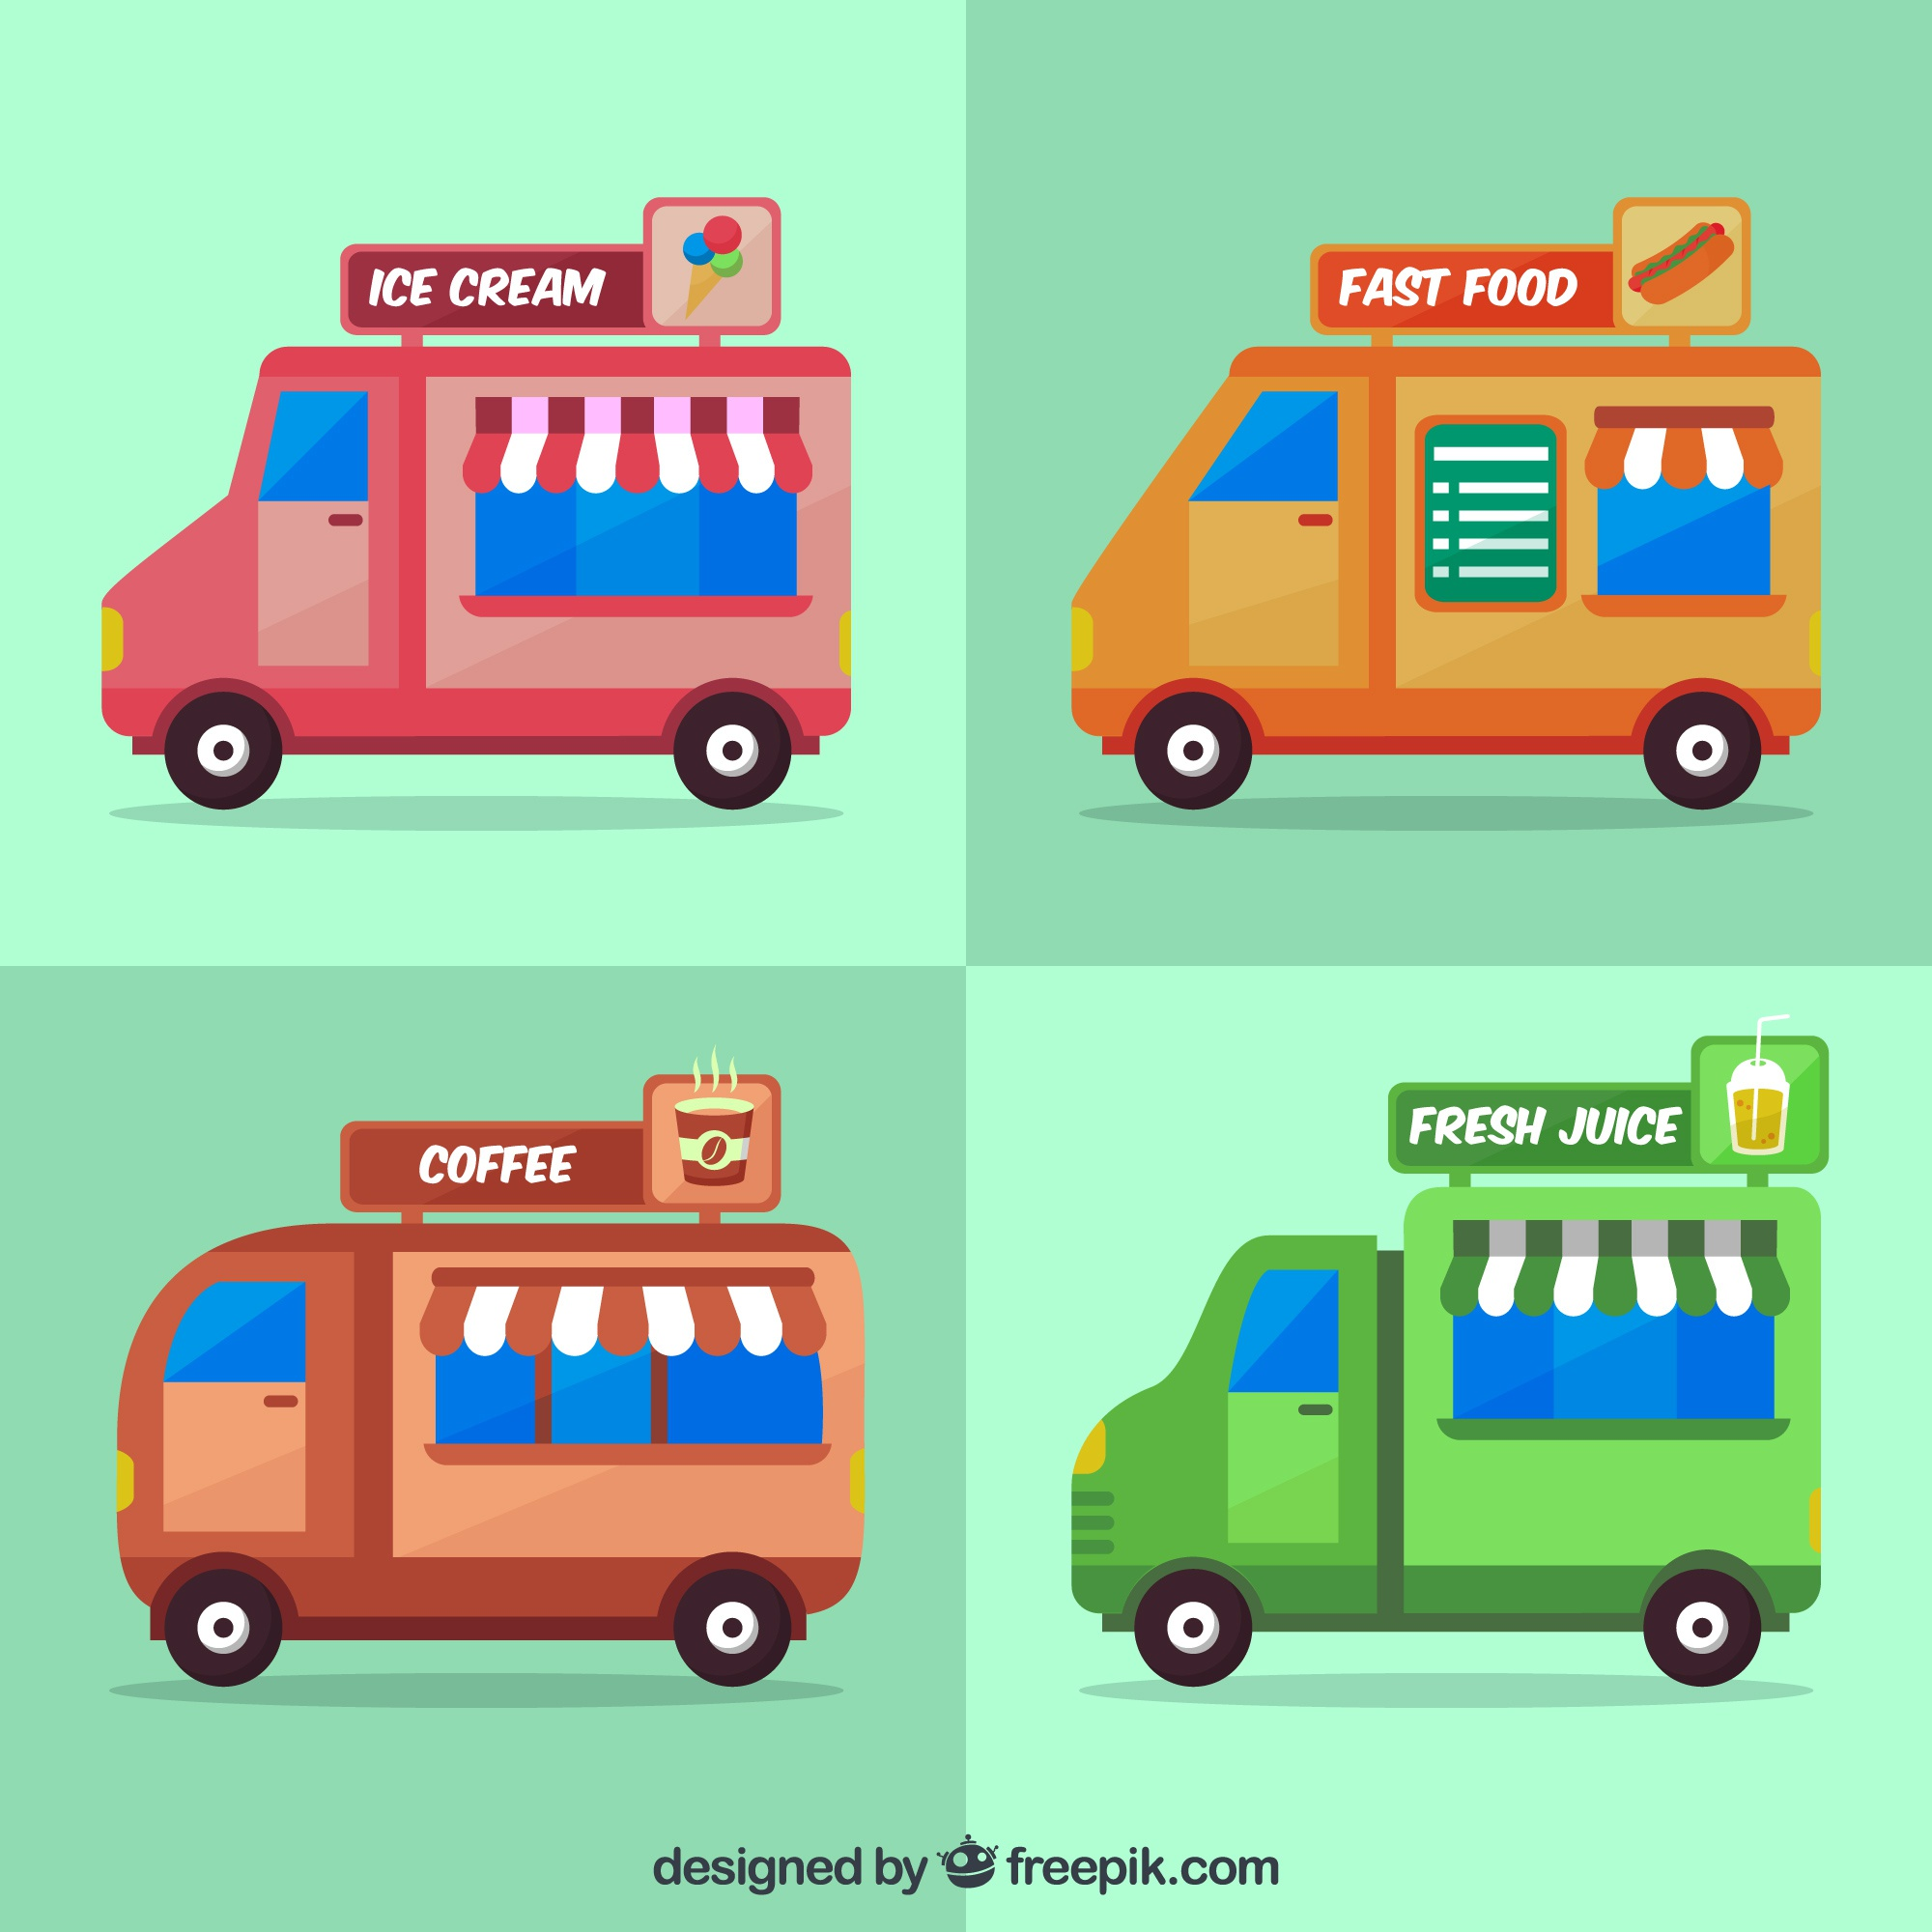 Flat variety of food trucks with fast food